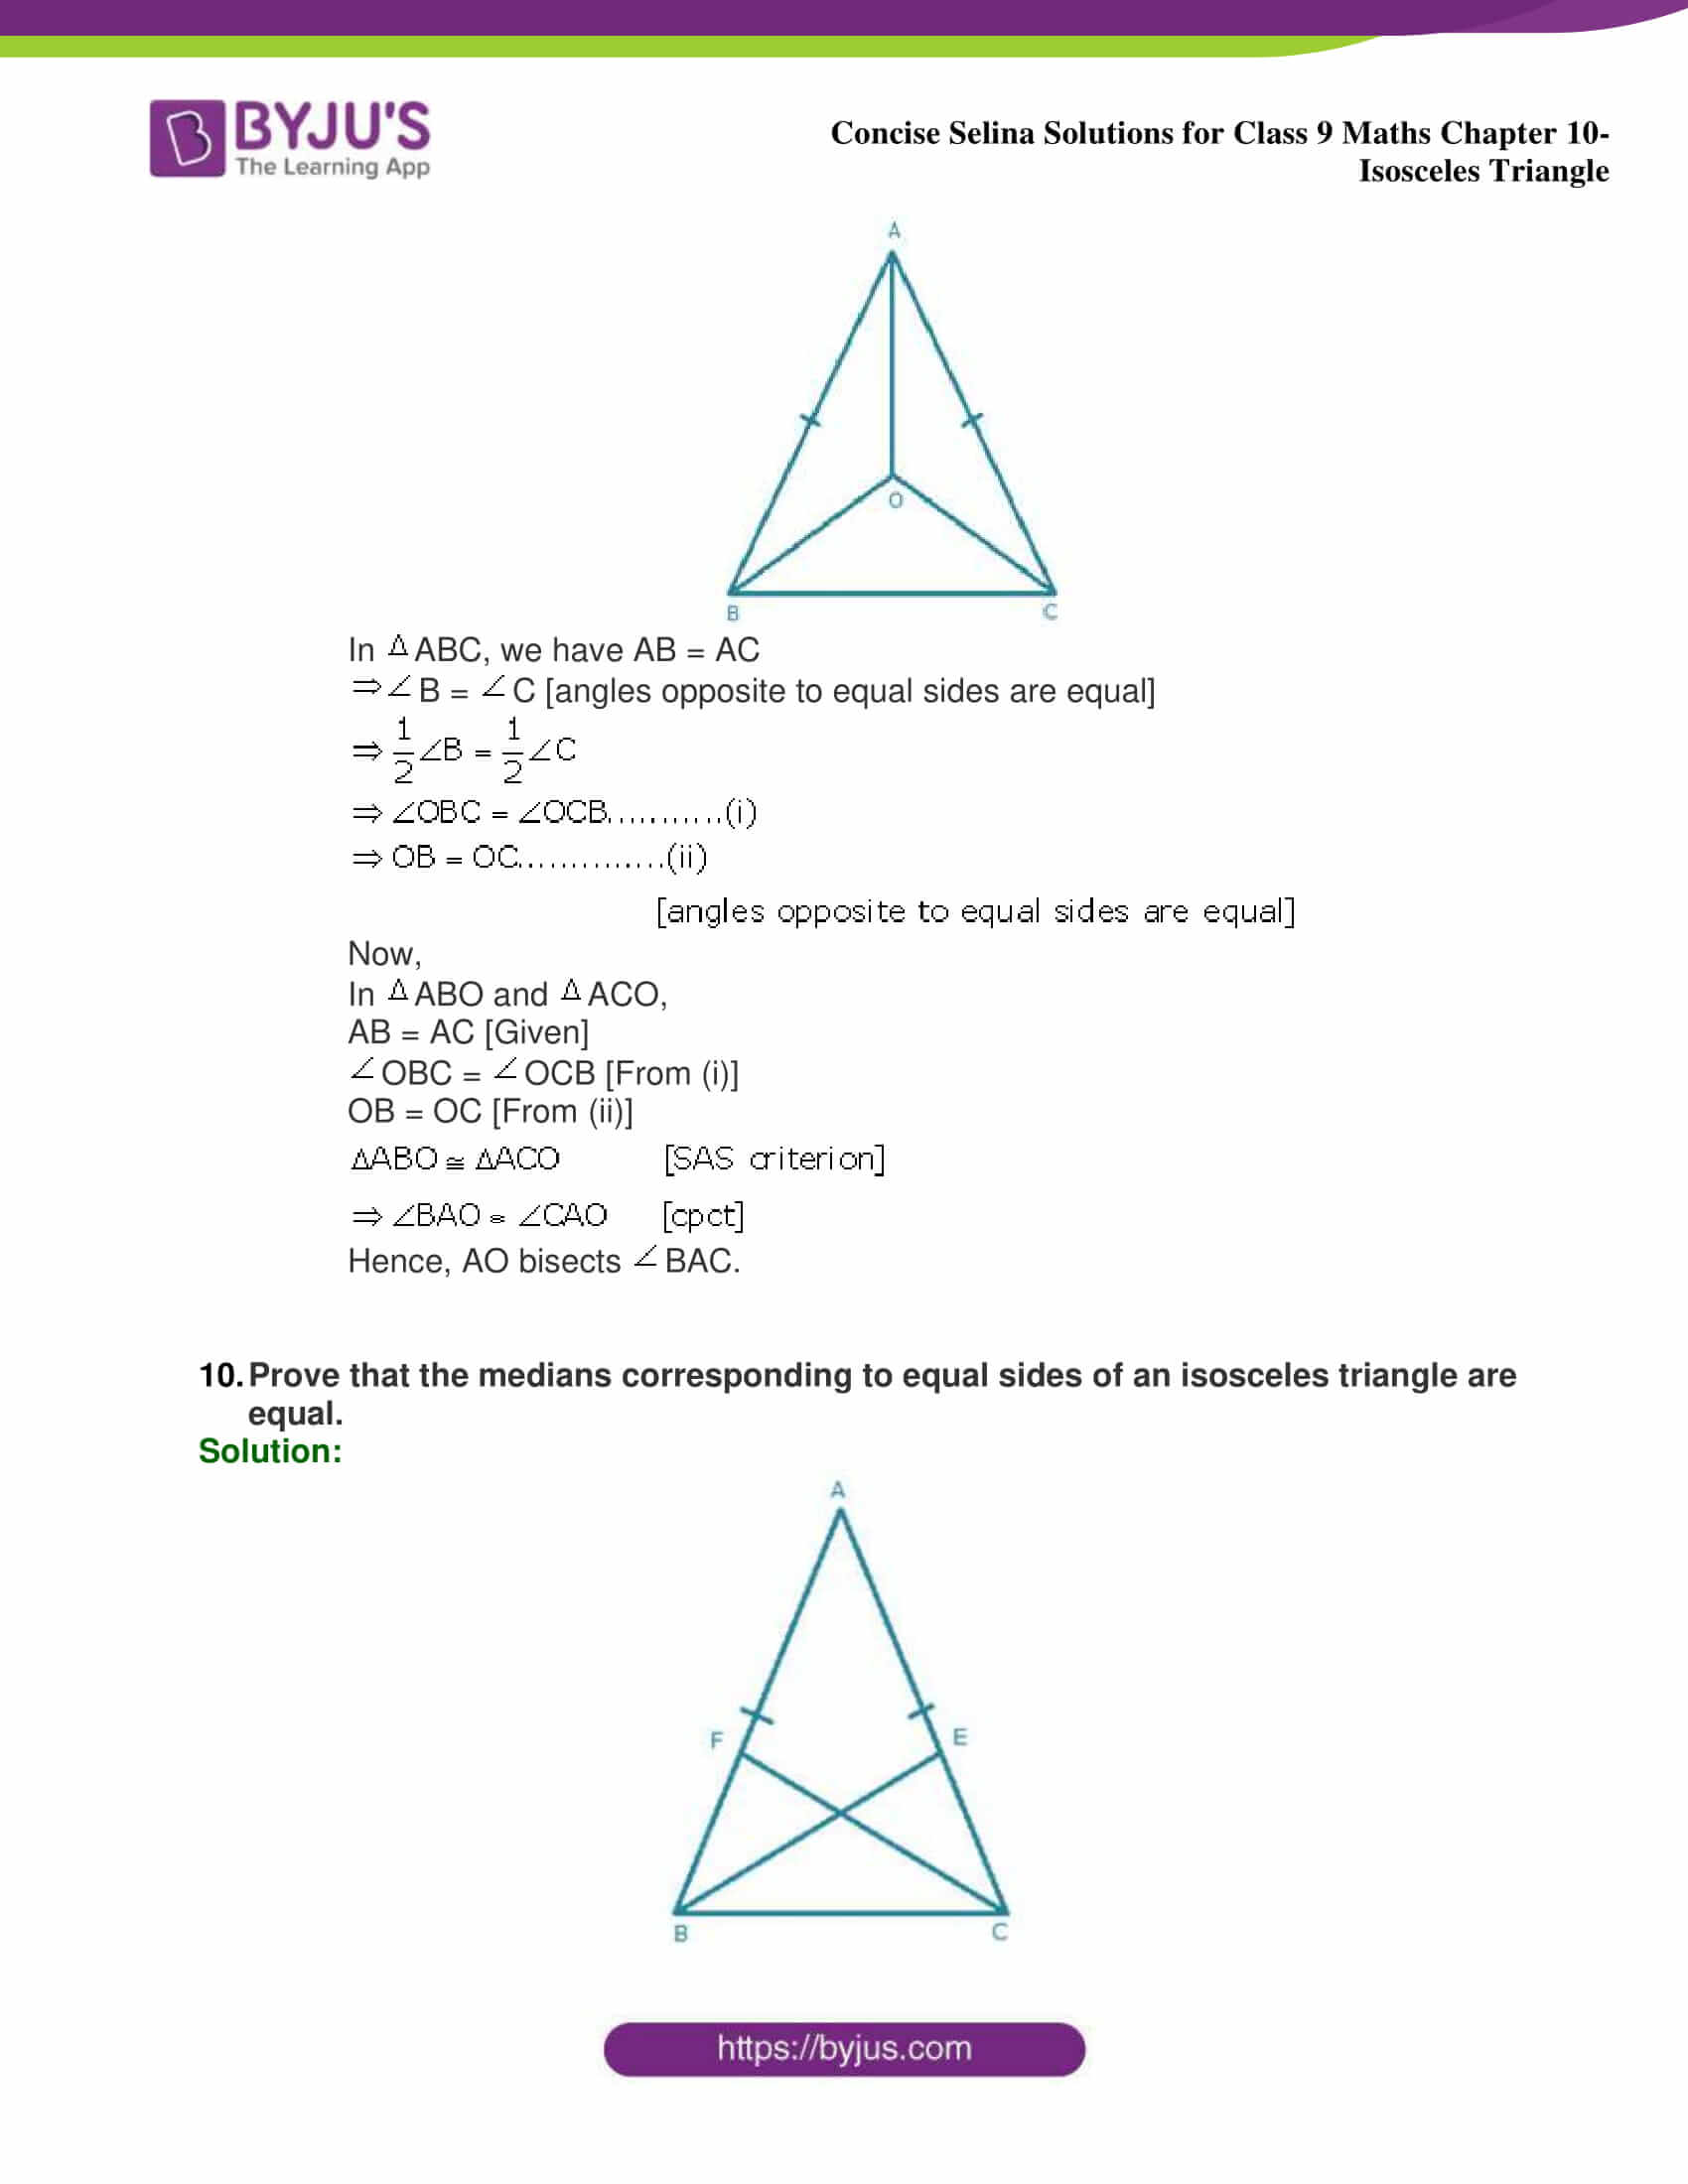 selina Solutions for Class 9 Maths Chapter 10 part 30